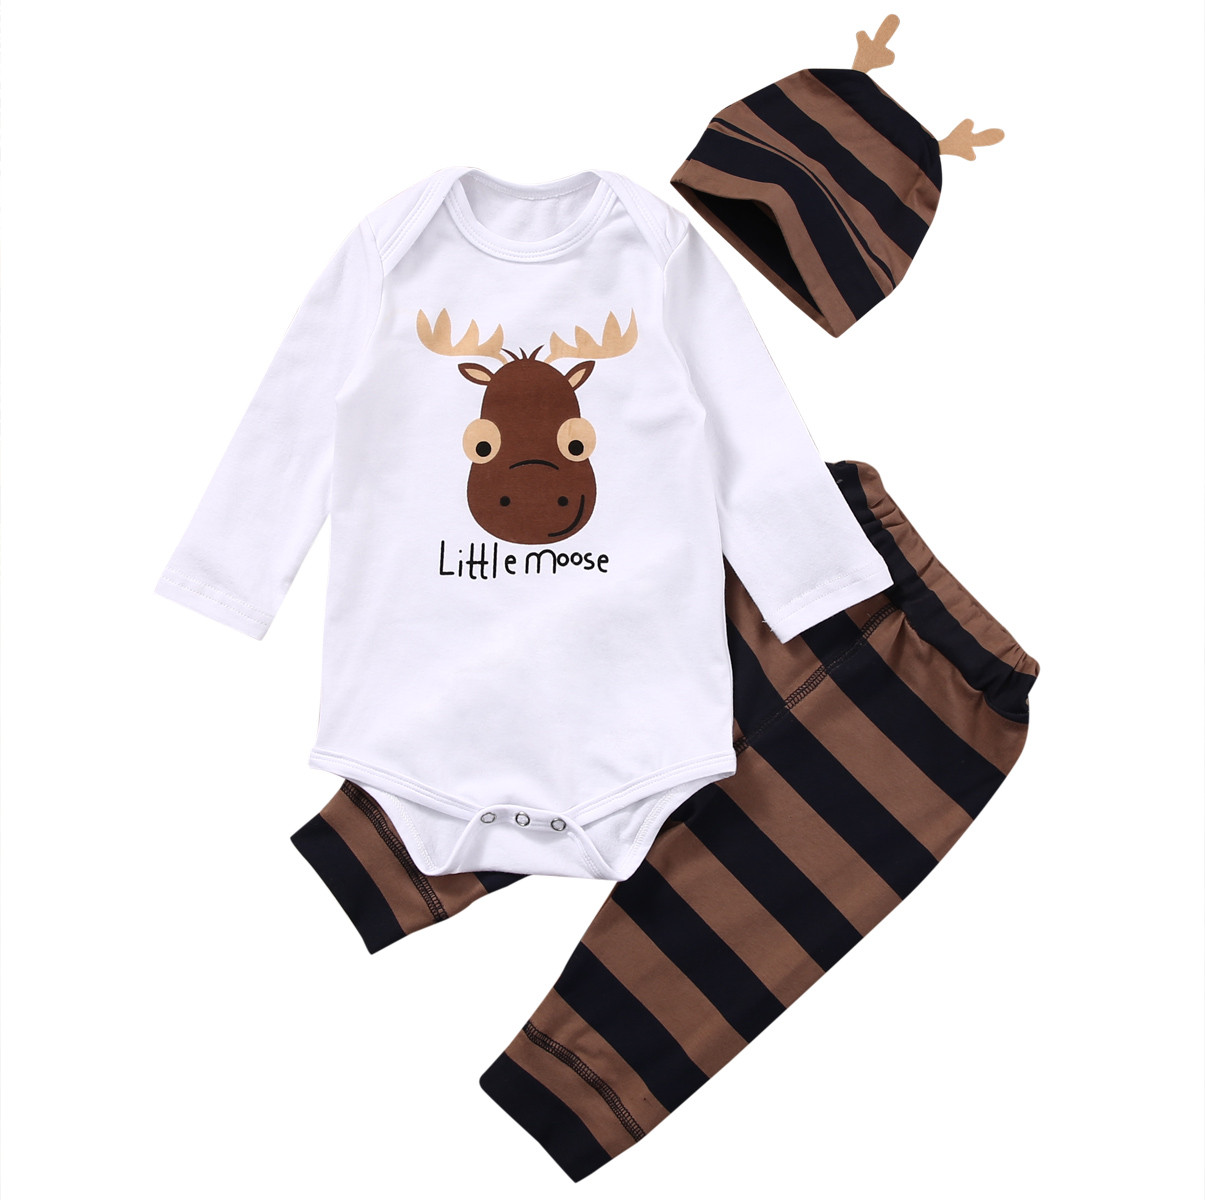 Baby Boys Clothing Sets Xmas Little Newborn Baby Boy Girls Clothes Long Sleeve Romper Jumpsuit Long Pants +hat Outfits 3pcs set newborn infant baby boy girl clothes 2017 summer short sleeve leopard floral romper bodysuit headband shoes outfits